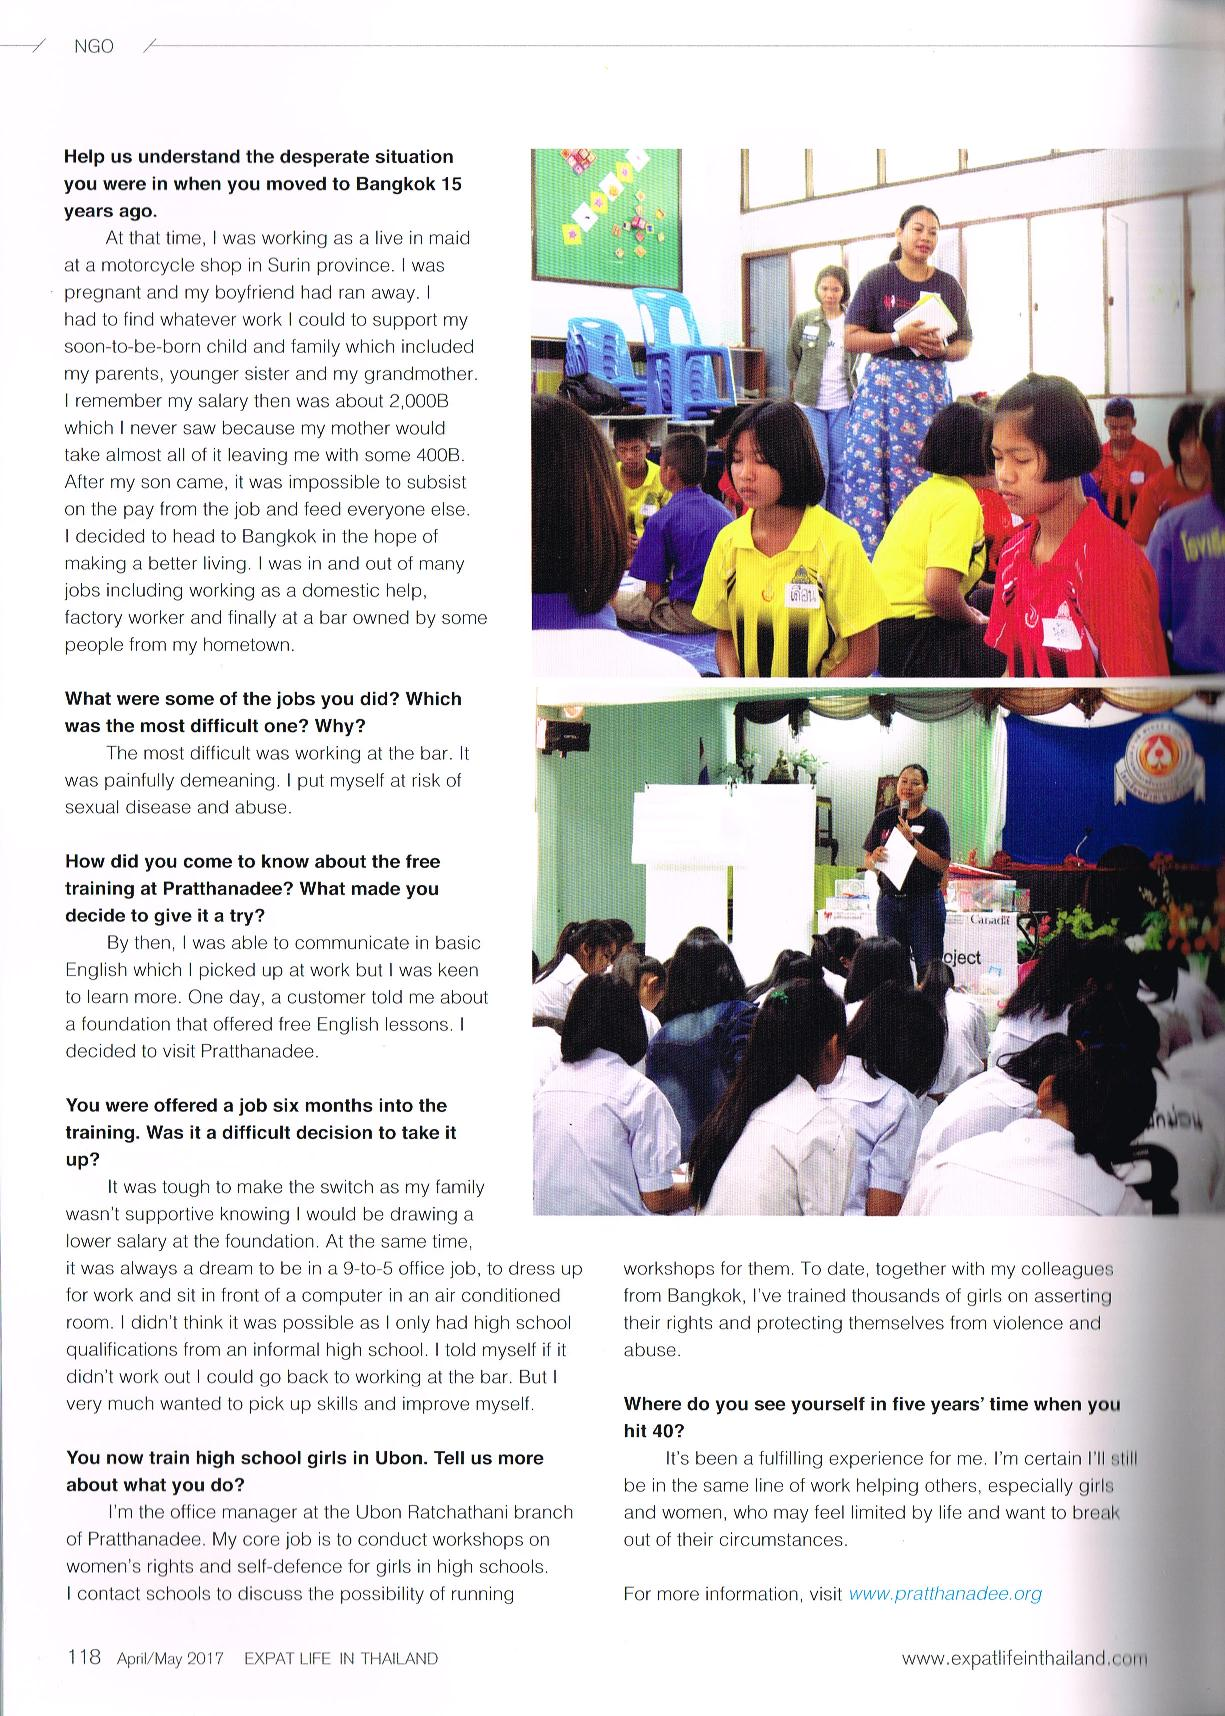 """Article: """"The Road to a Better Me"""" for Expat Life in Thailand"""